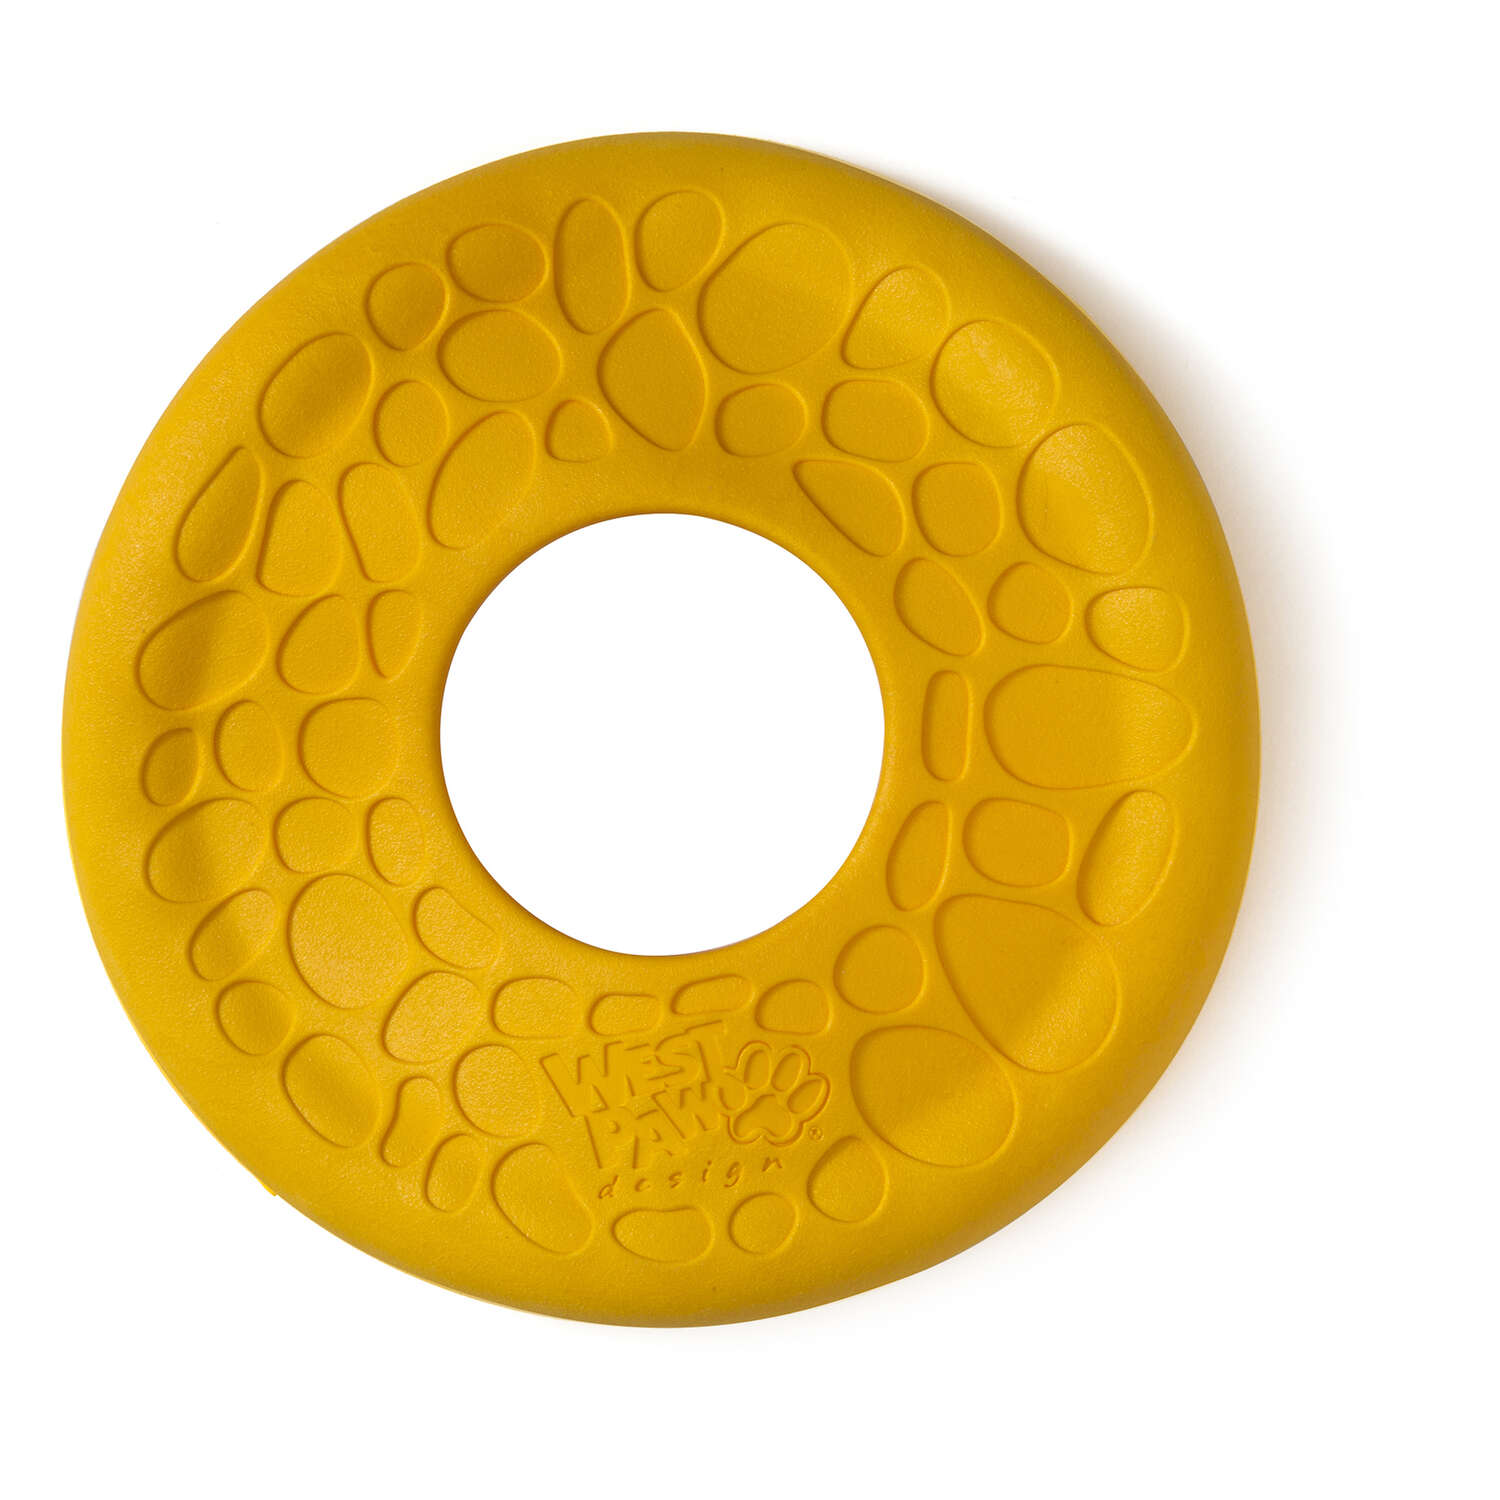 West Paw  Zogoflex Air  Yellow  Disc  Synthetic Rubber  Frisbee  Medium